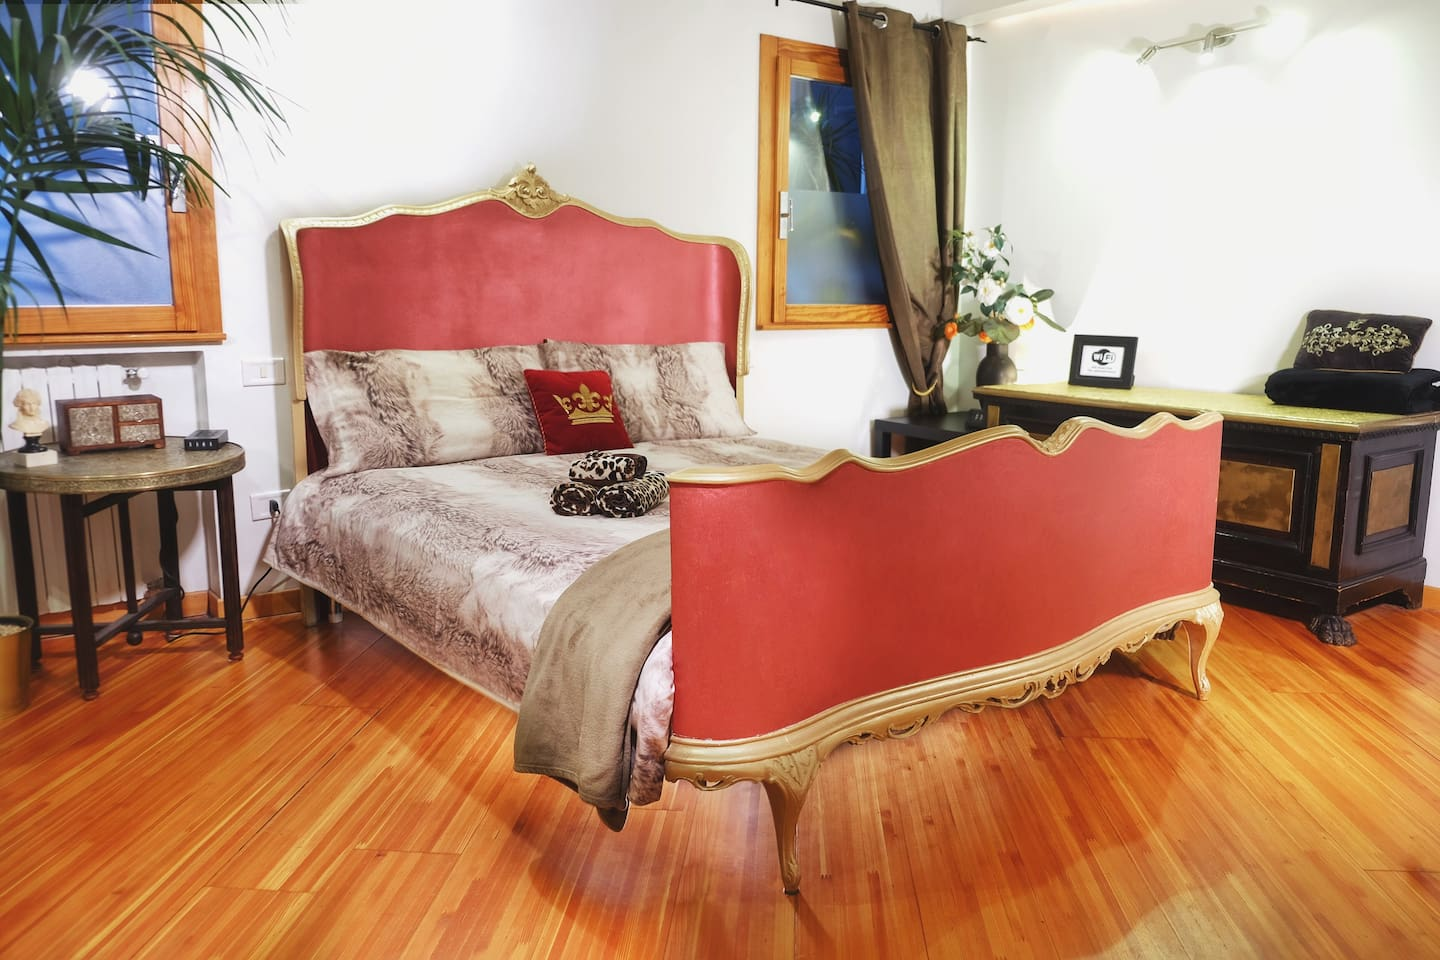 NEW, restored antique bed. Luxury style if a Gondoliere!!